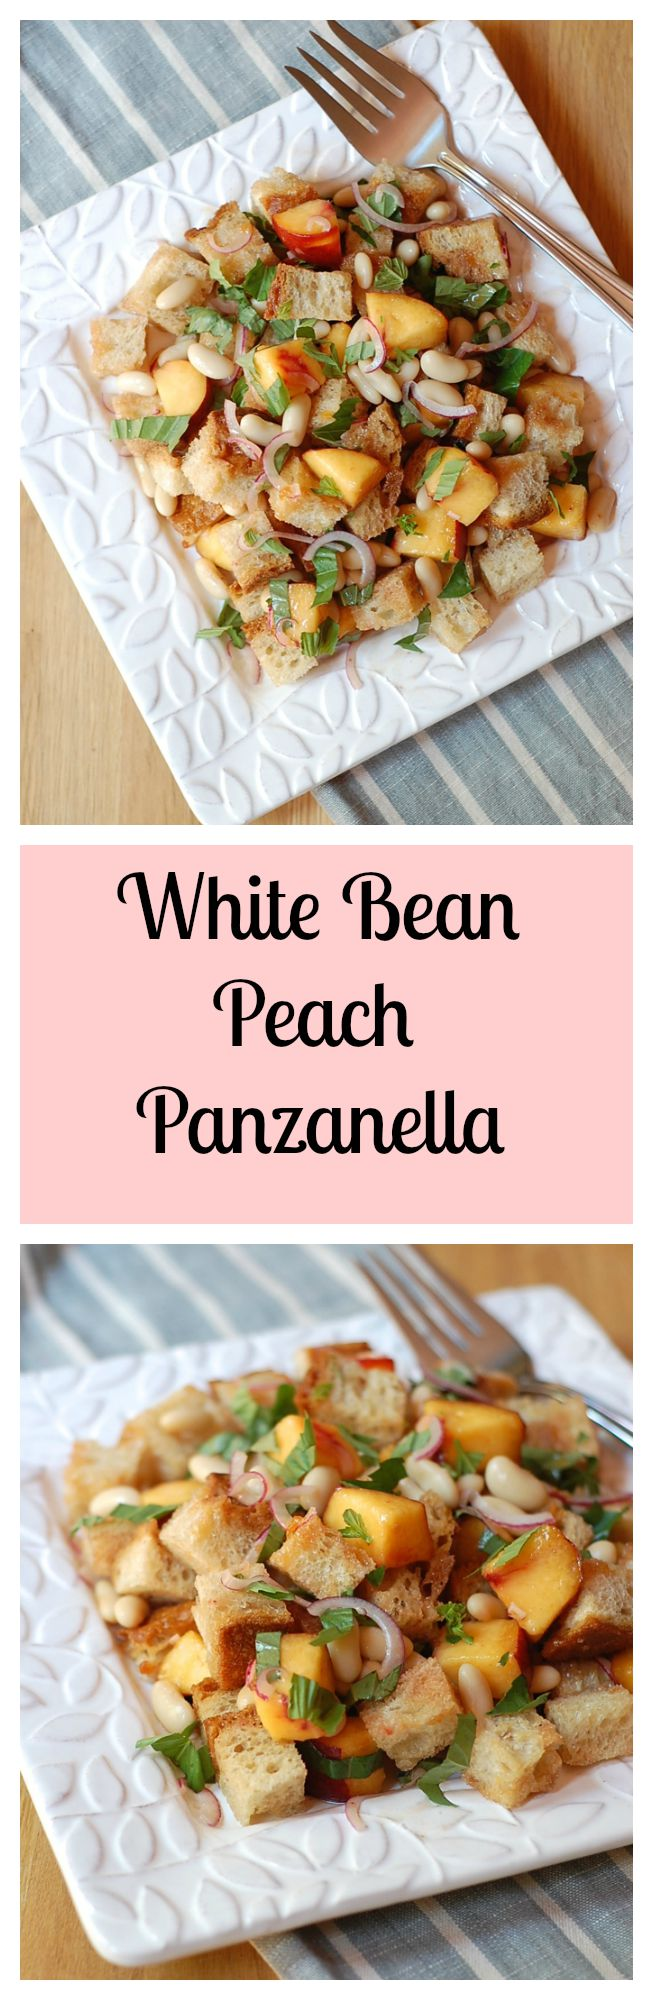 White Bean Peach Panzanella Salad